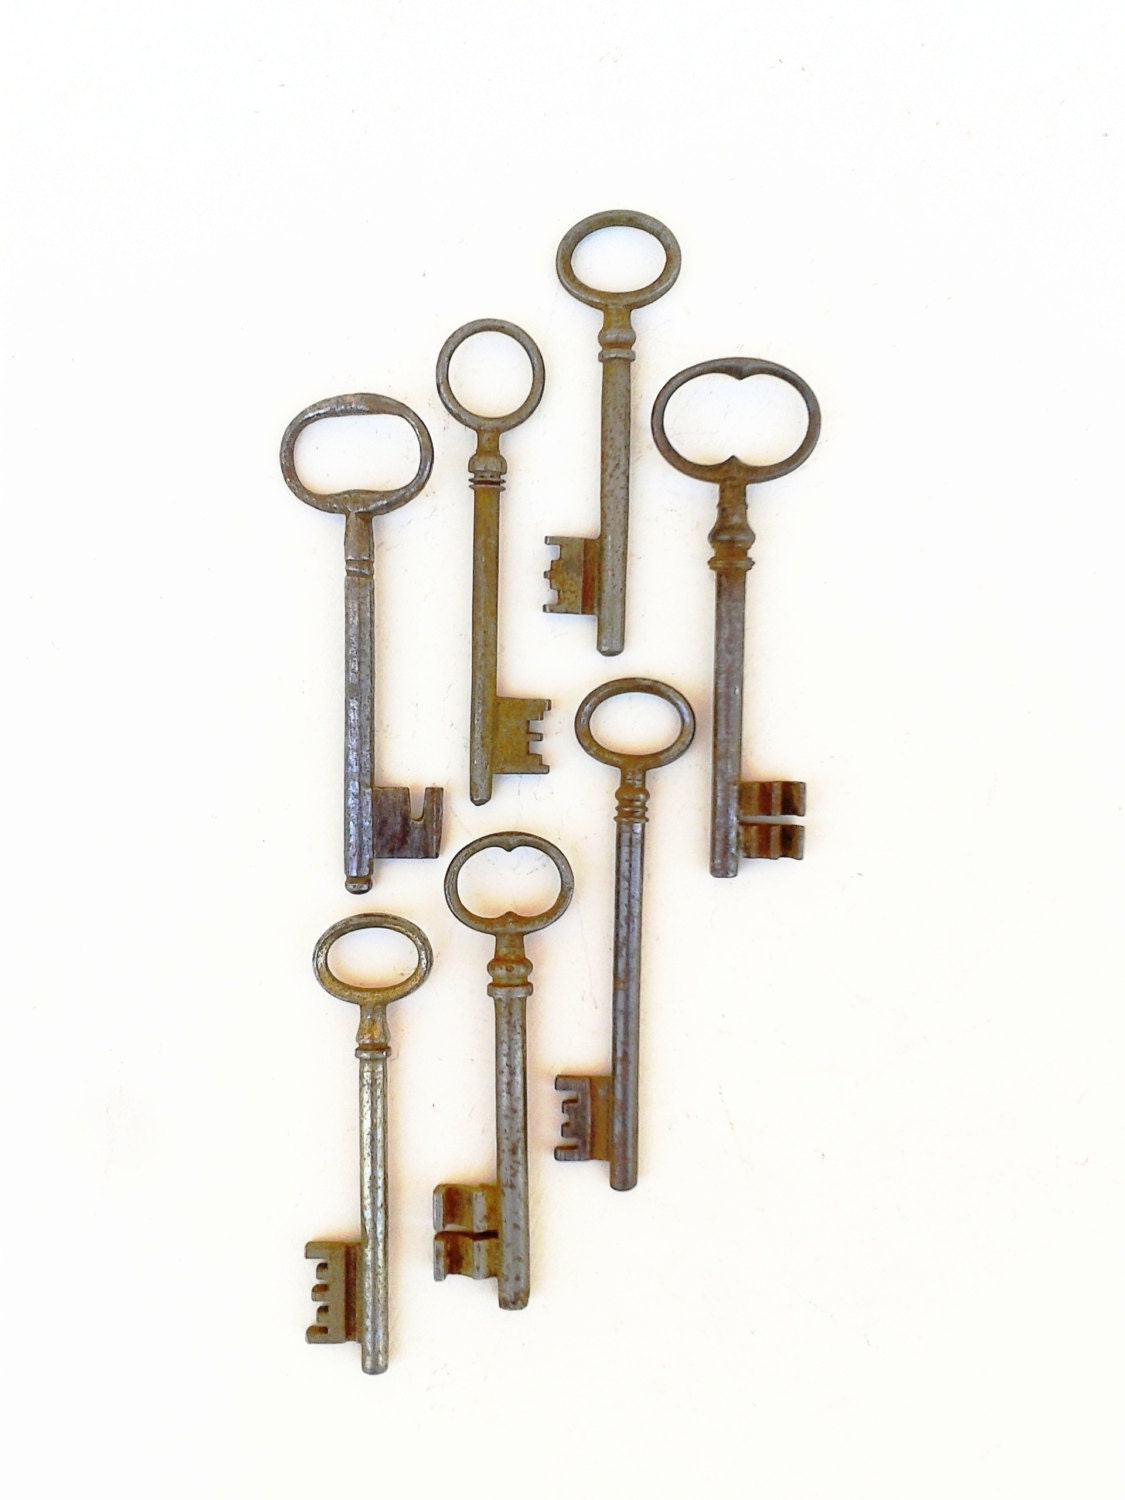 7 KEYS ANTIQUE FRENCH Lot Old Keys Medium Authentic Rusty Keys Country Cottage Style Use them in Steampunk, Jewellery, Art etc. - FrenchMarketFinds